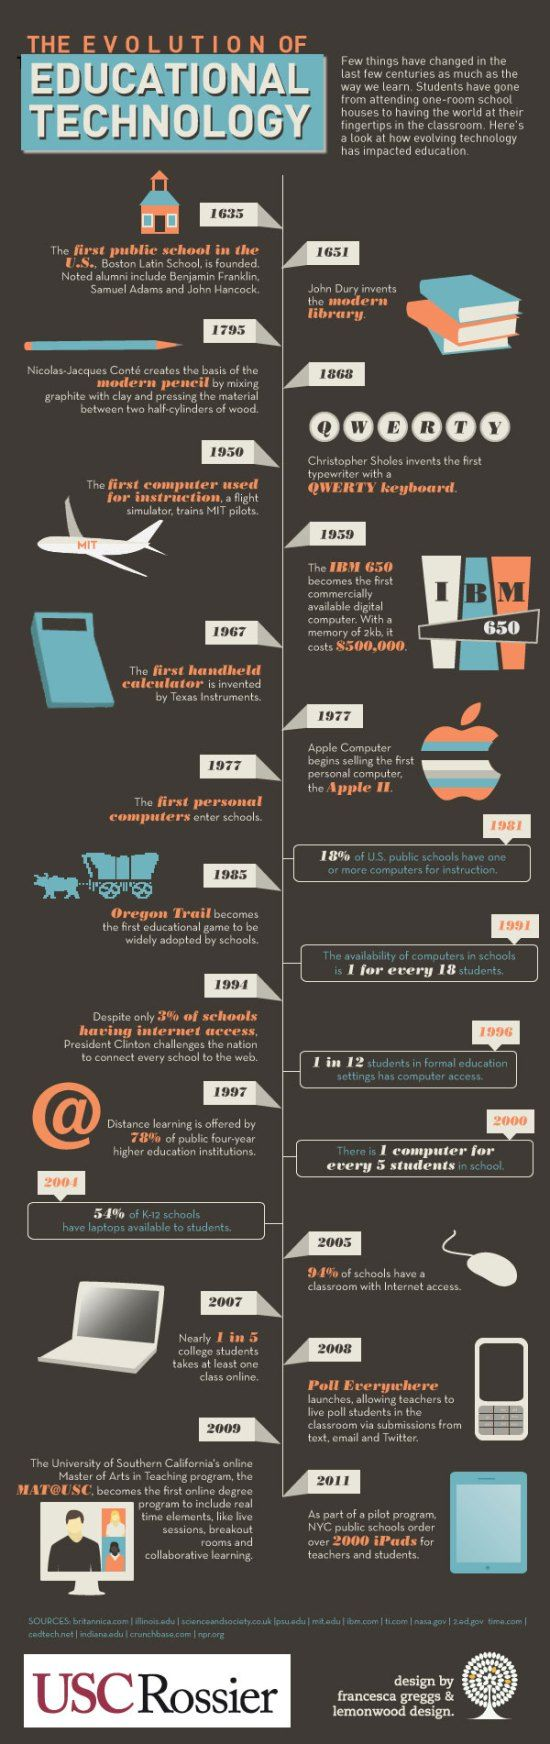 The Evolution of Educational Technology Infographic «